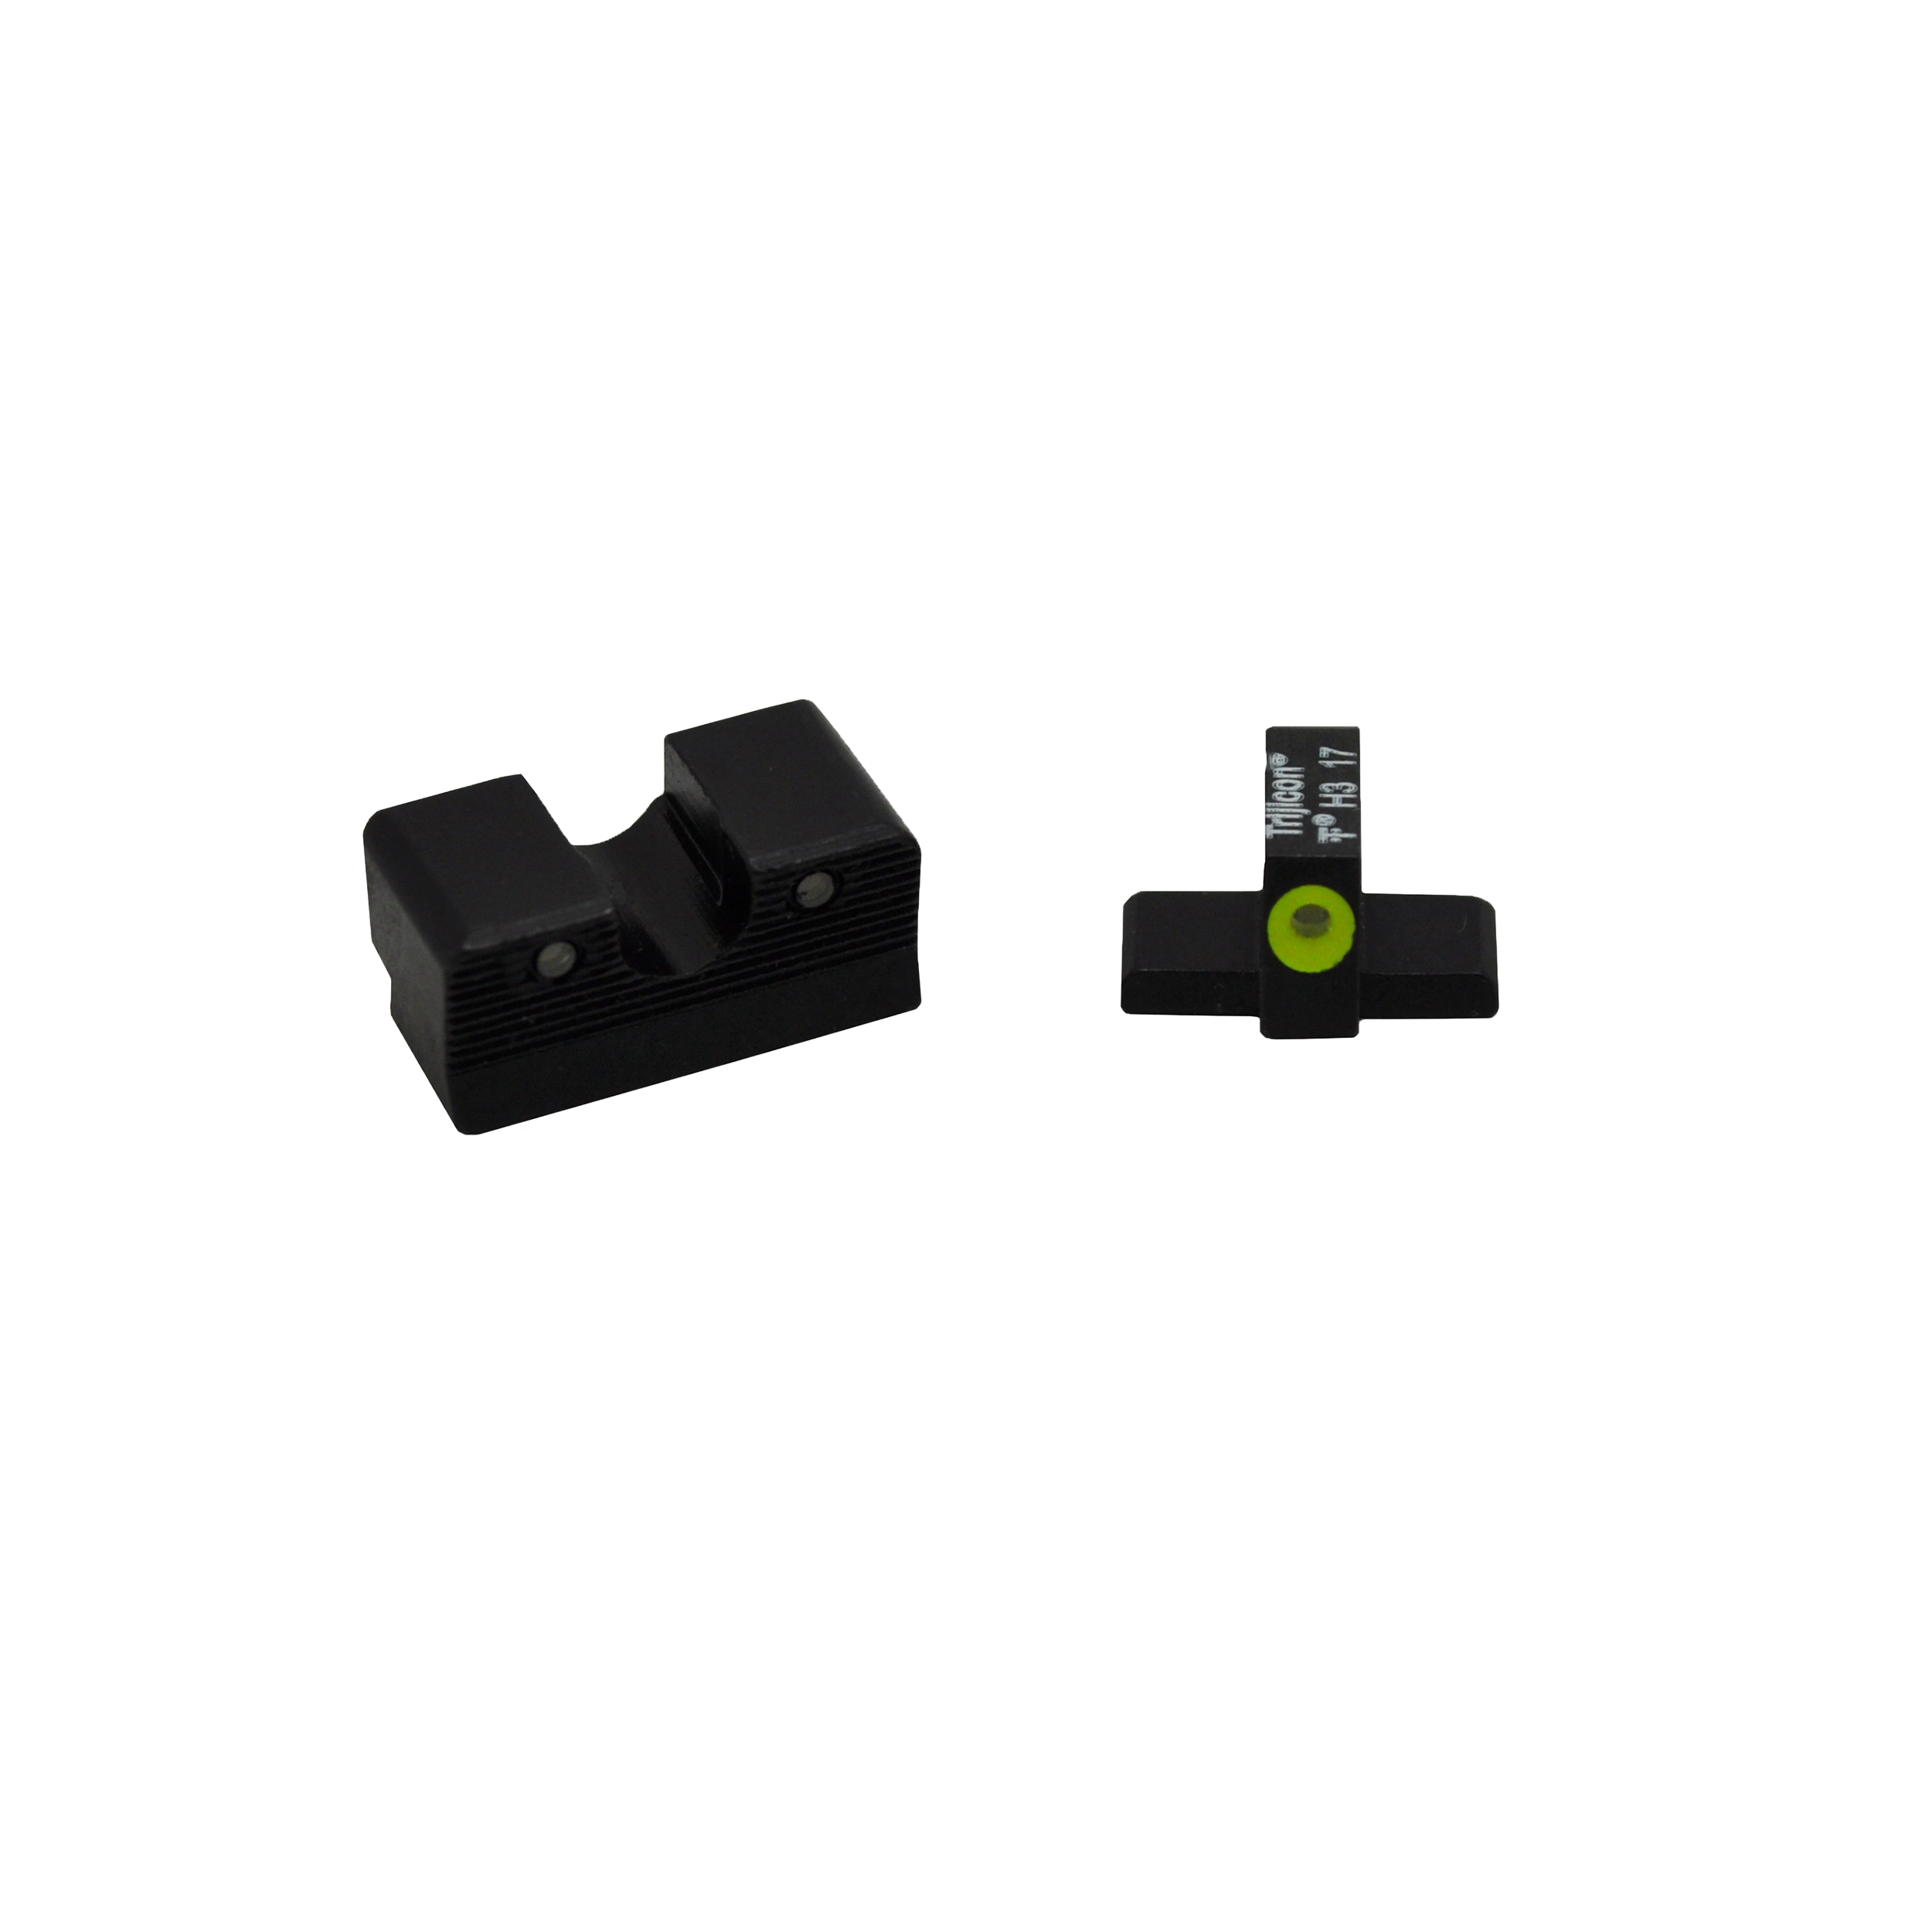 Trijicon HD XR Night Sight Set Sig Sauer Calibrated for .40 S&W and .45ACP, Yellow Front Outline Lamp by Trijicon